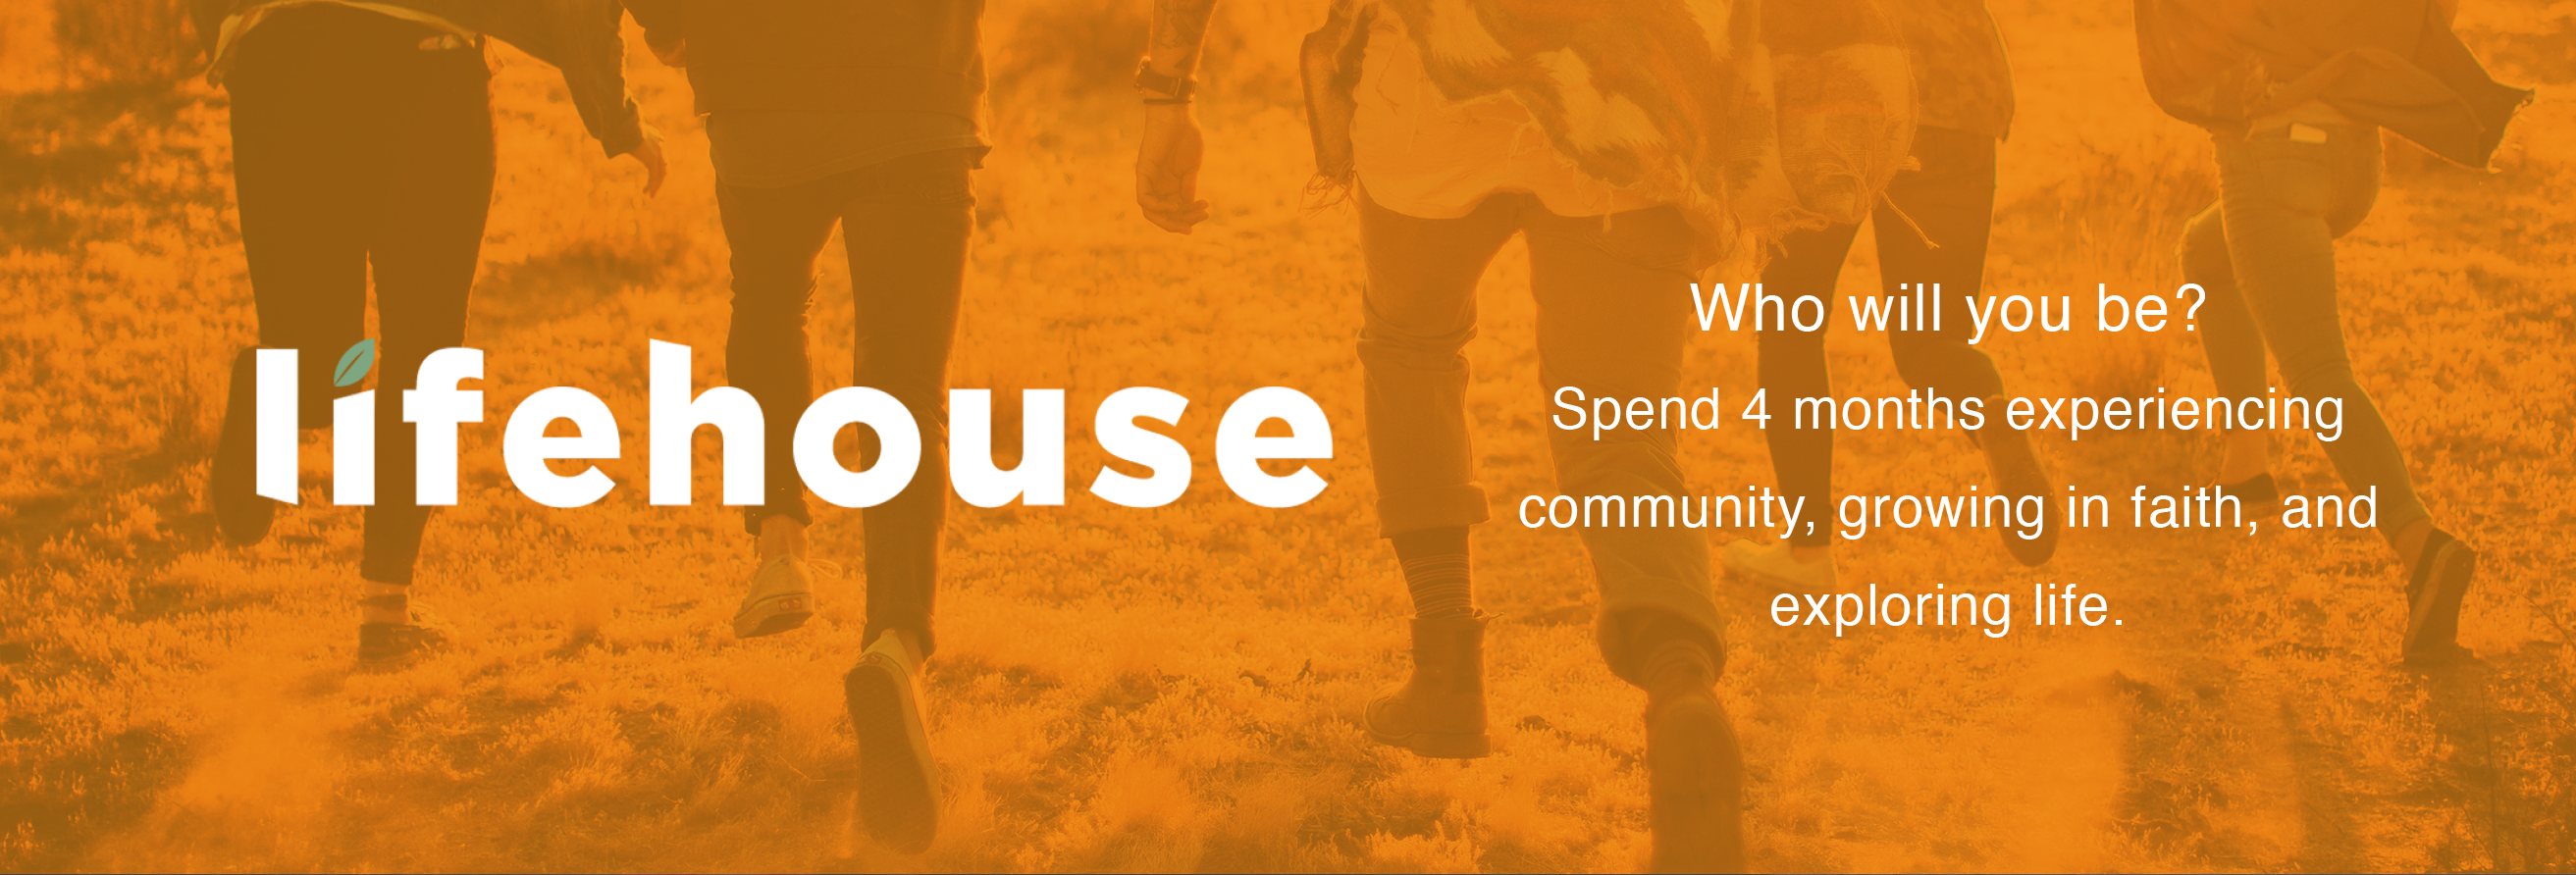 Lifehouse. Who will you be? Spend 4 months experiencing community, growing in faith, and exploring life.